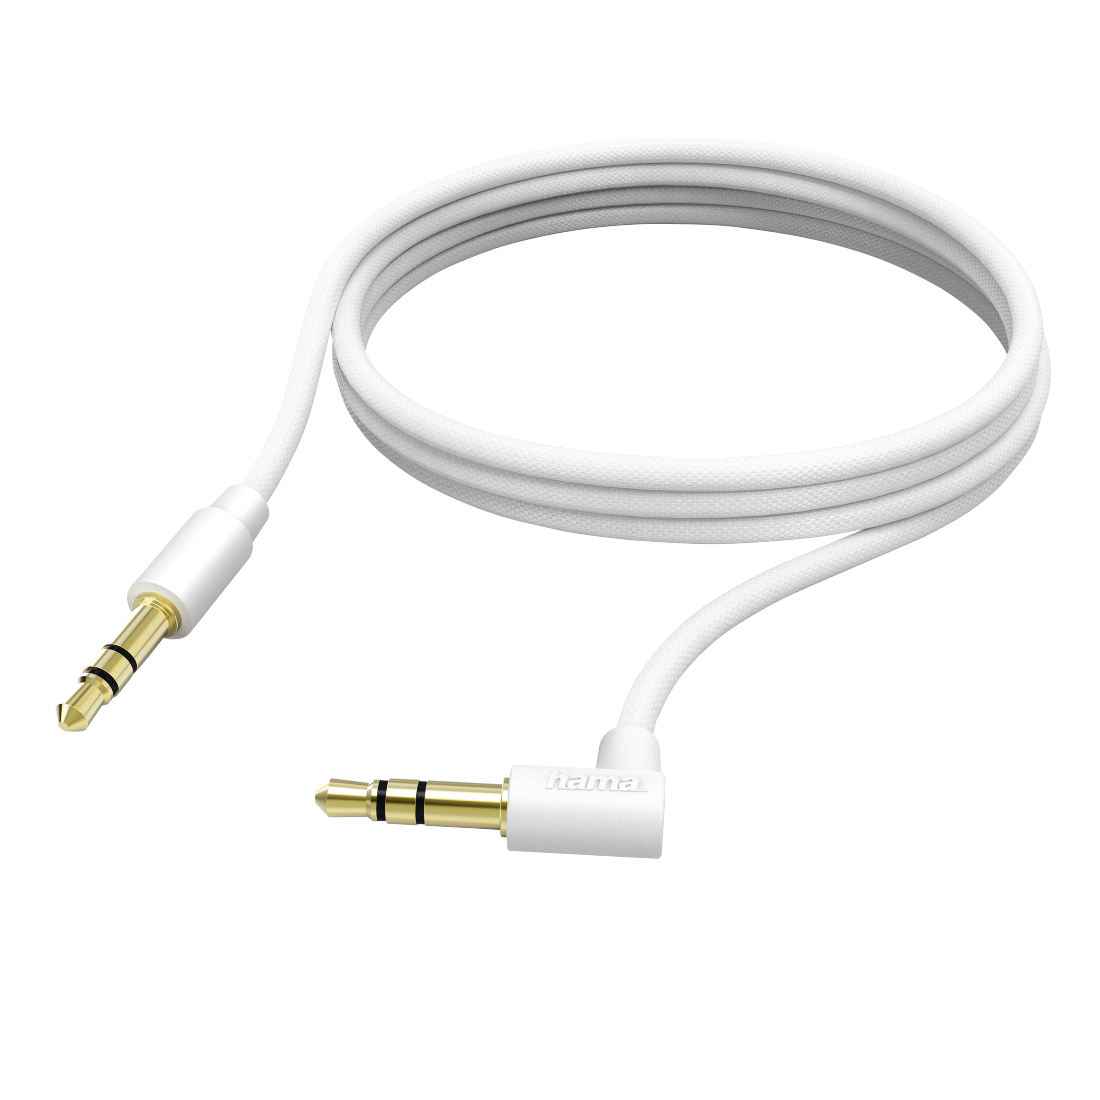 abx High-Res Image - Hama, Connecting Cable, 3.5 mm jack plug, 2.0 m, white